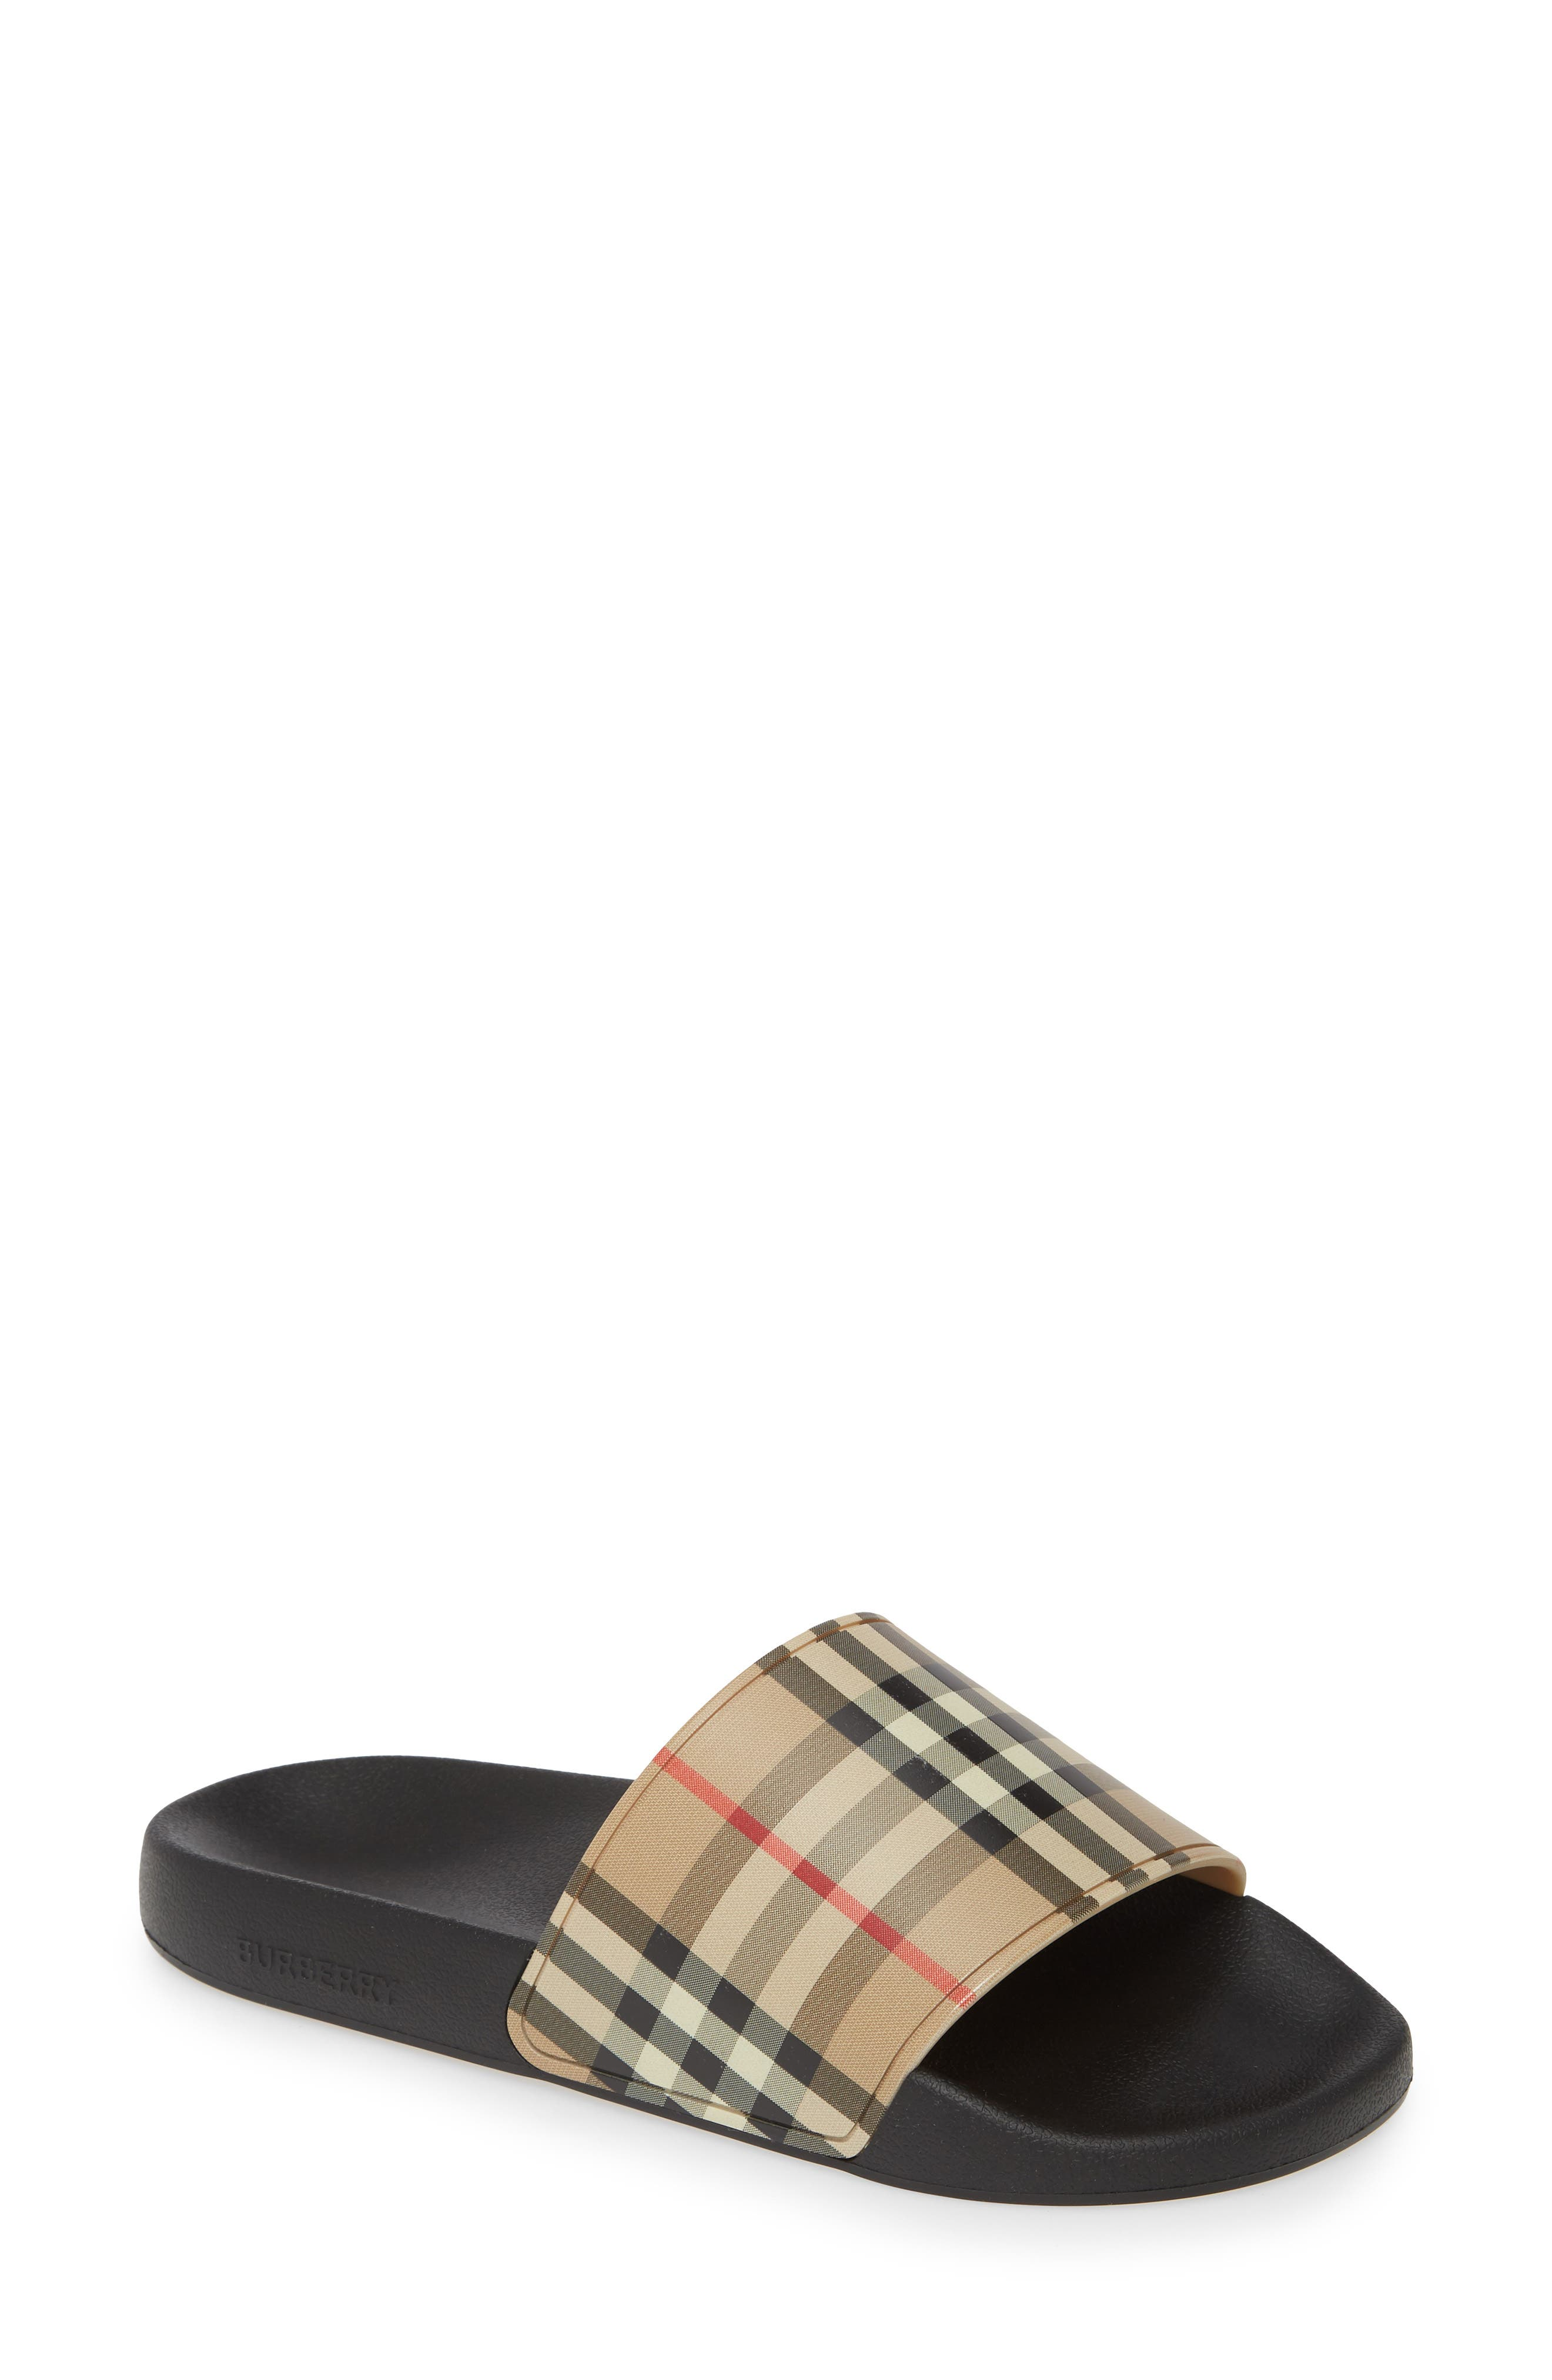 Burberry Furley Vintage Check Slide Sandal (Women)